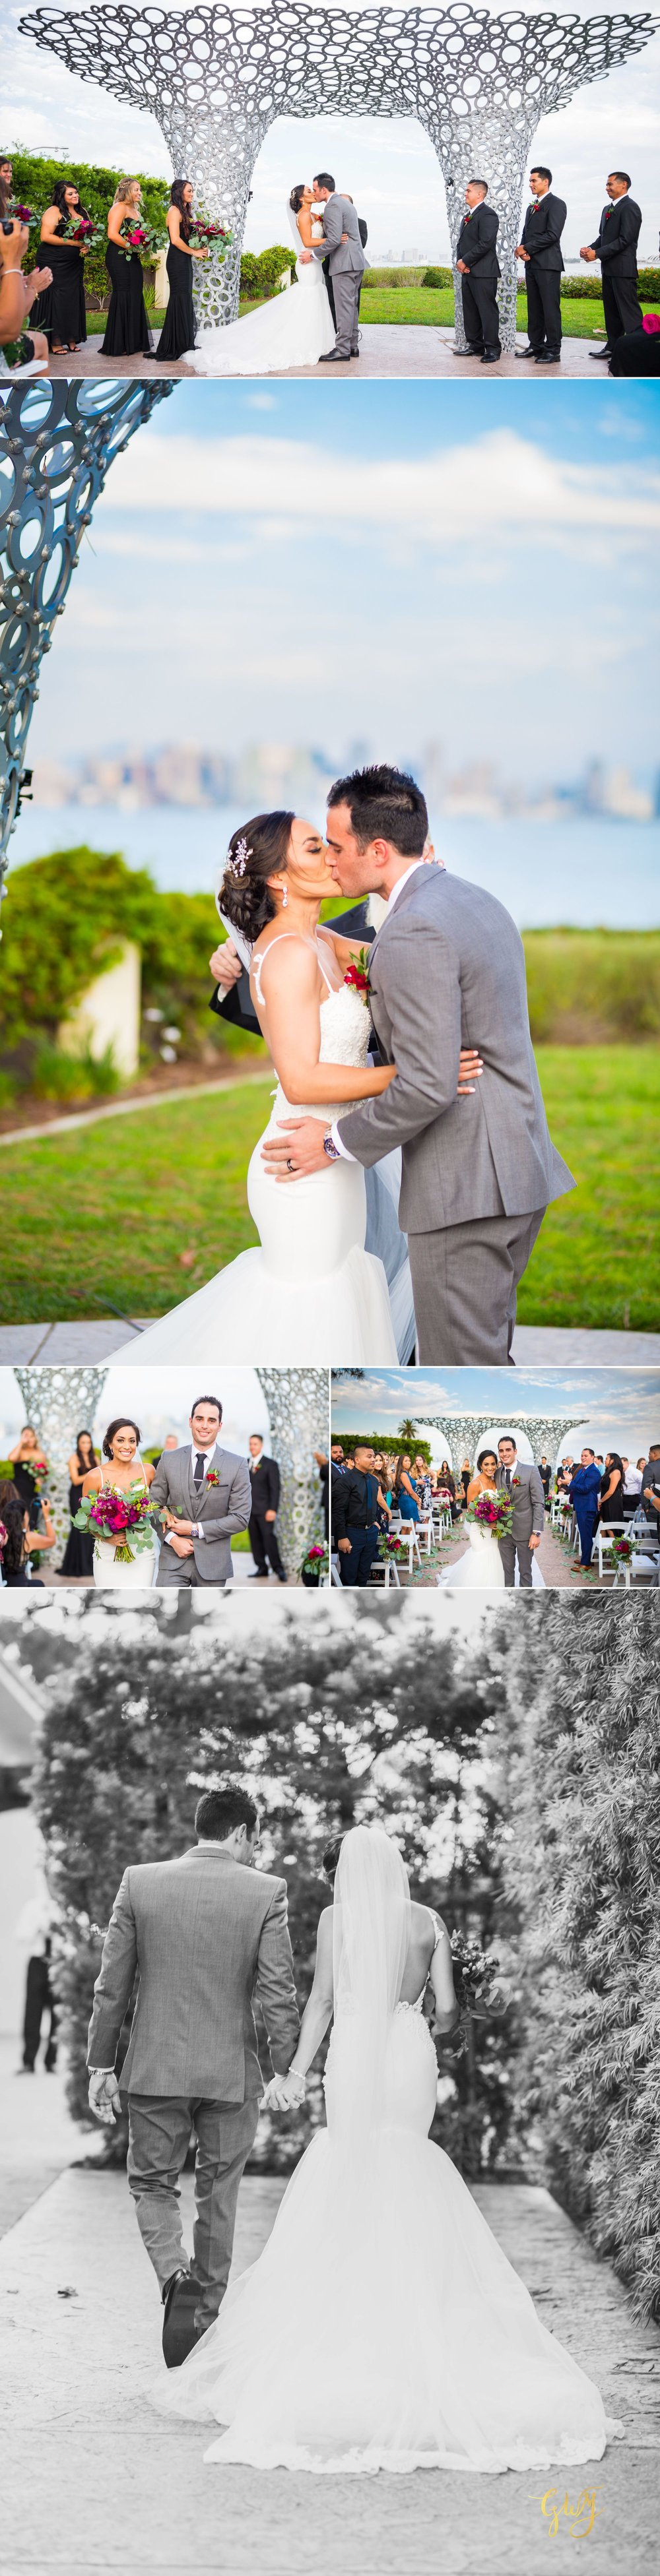 Alex + Jackie Elegant Tom Ham's Lighthouse San Diego Wedding by Glass Woods Media 27.jpg